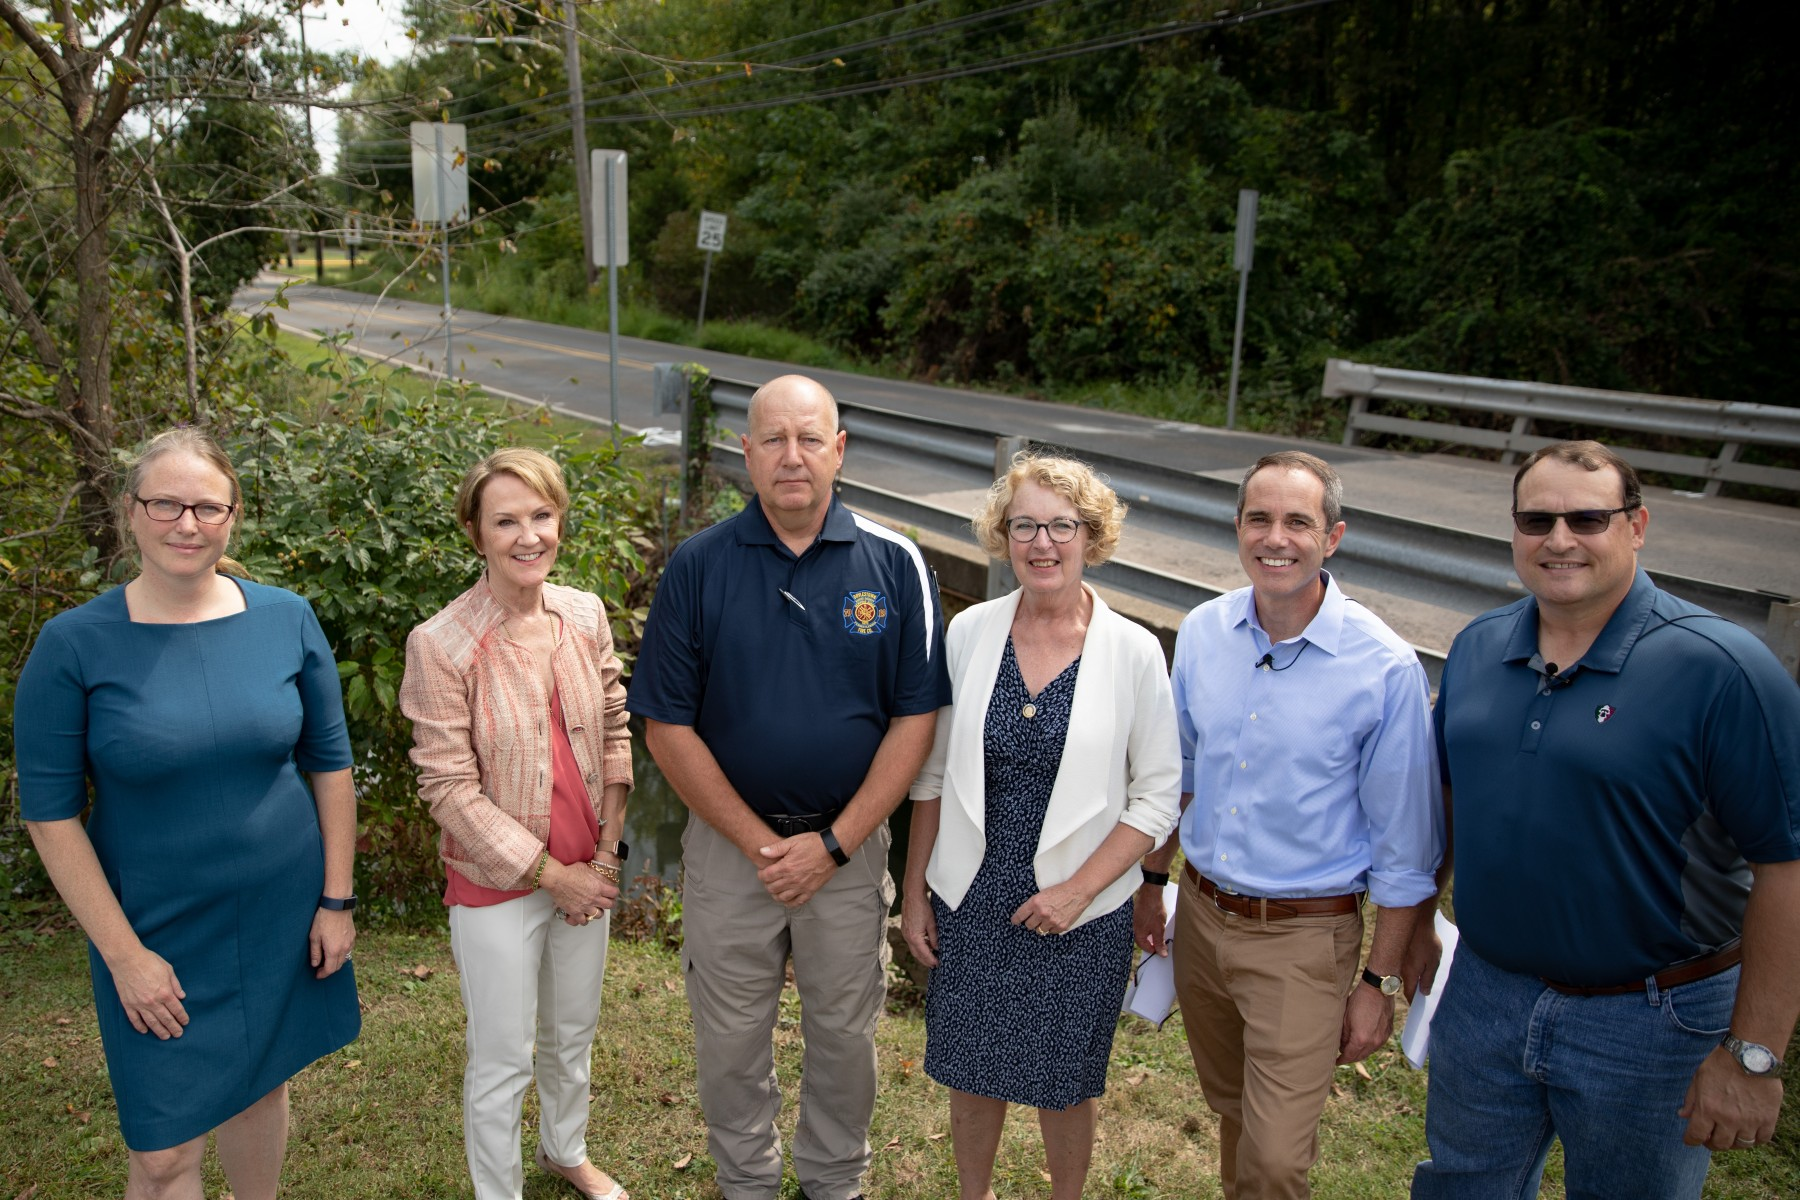 September 10, 2019: Senator Santarsiero with Representative Wendy Ullman (D-143), Doylestown Township officials, and a PennDOT representative at the Limekiln Road bridge.